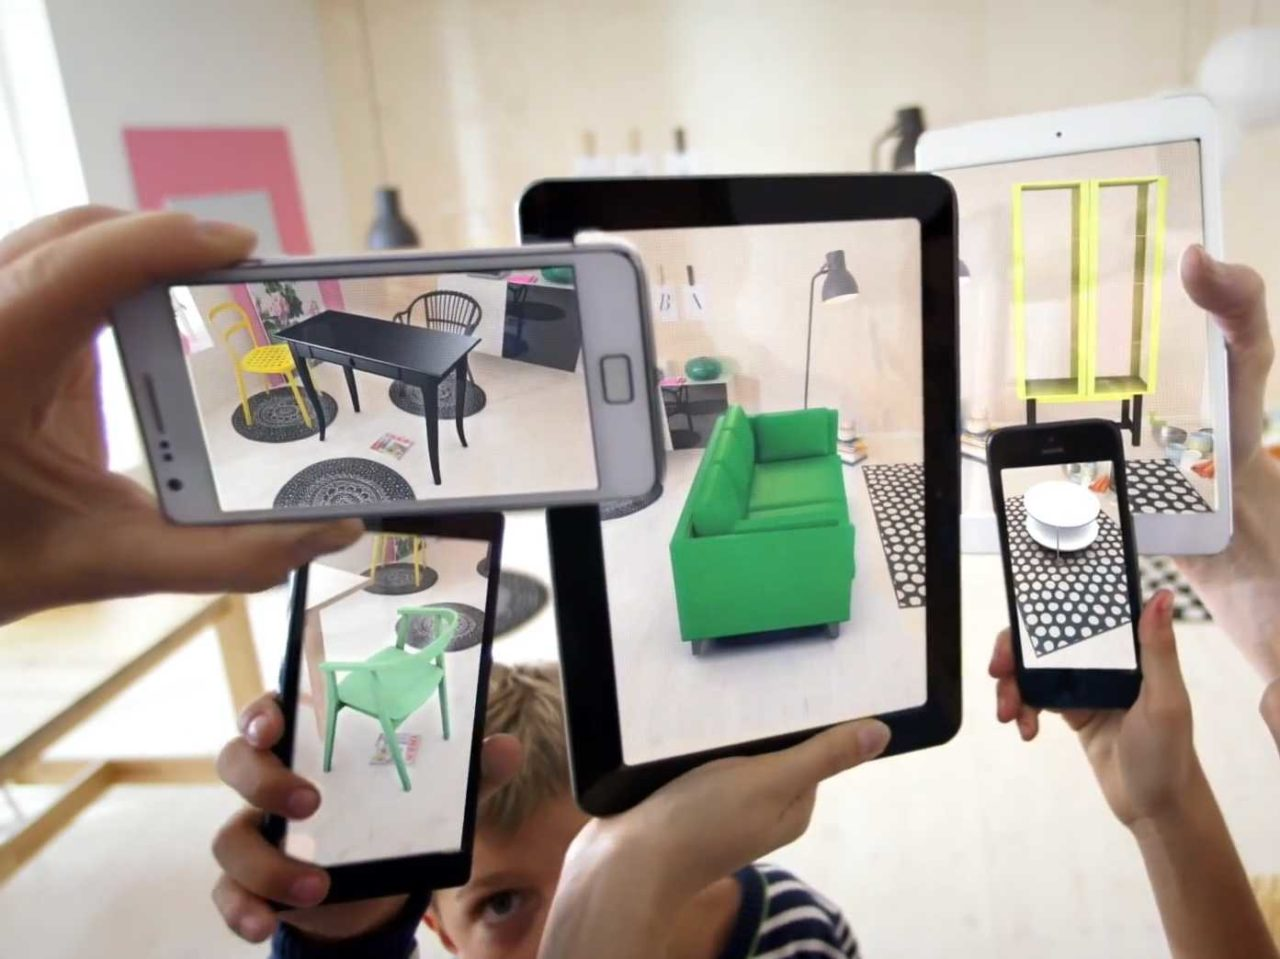 ikeas augmented reality catalog lets you virtually demo its furniture in your living room e1476130762985